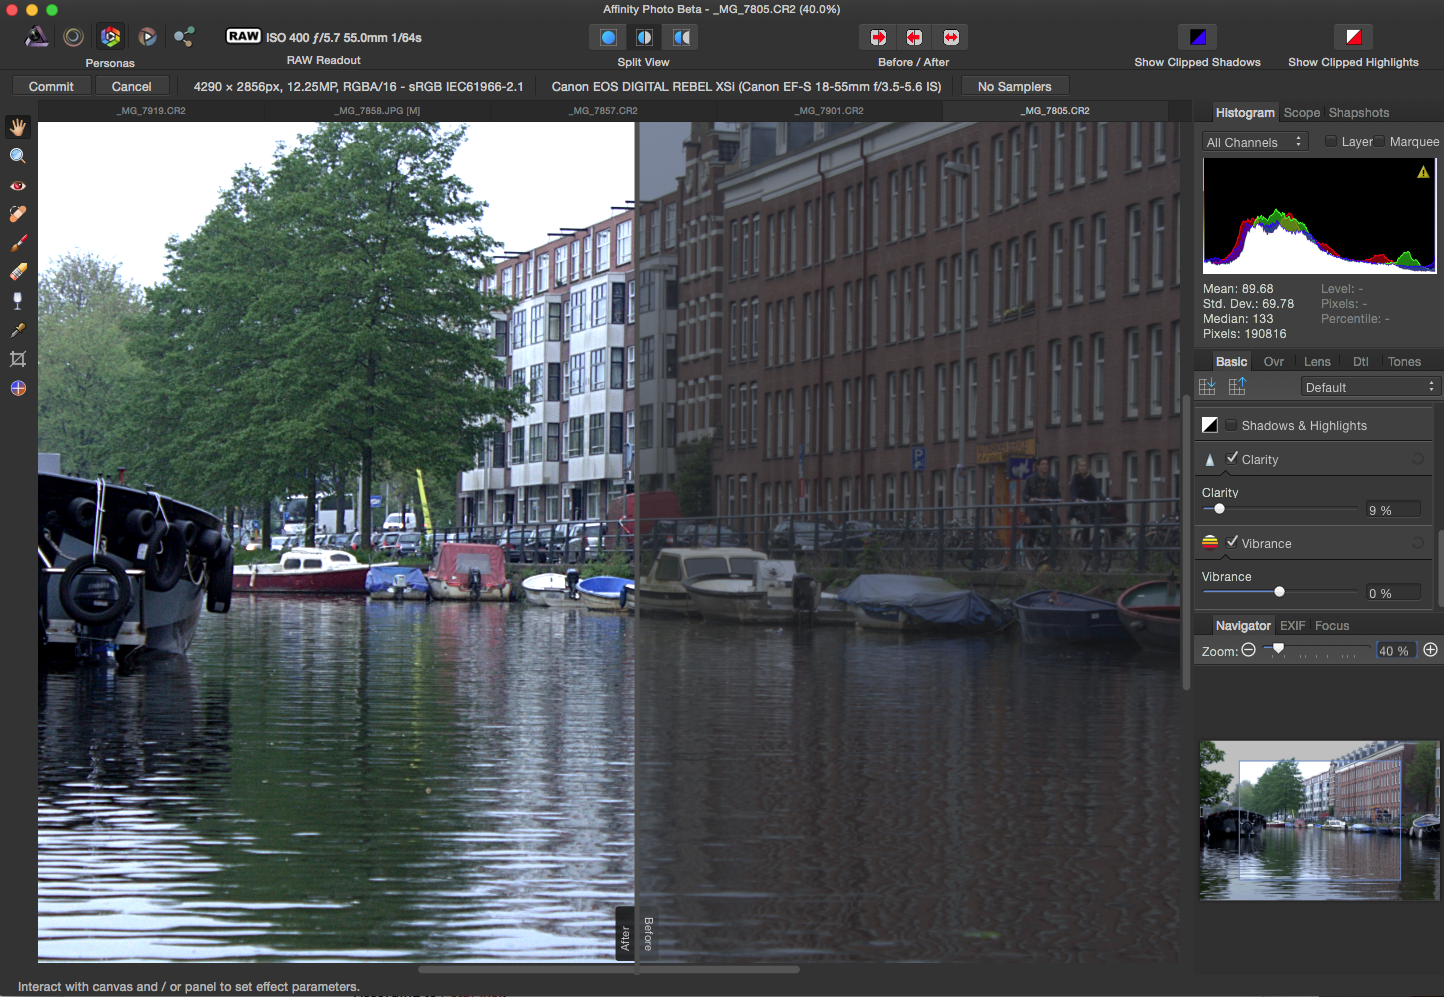 Hands on: The Affinity Photo Challenge to Photoshop